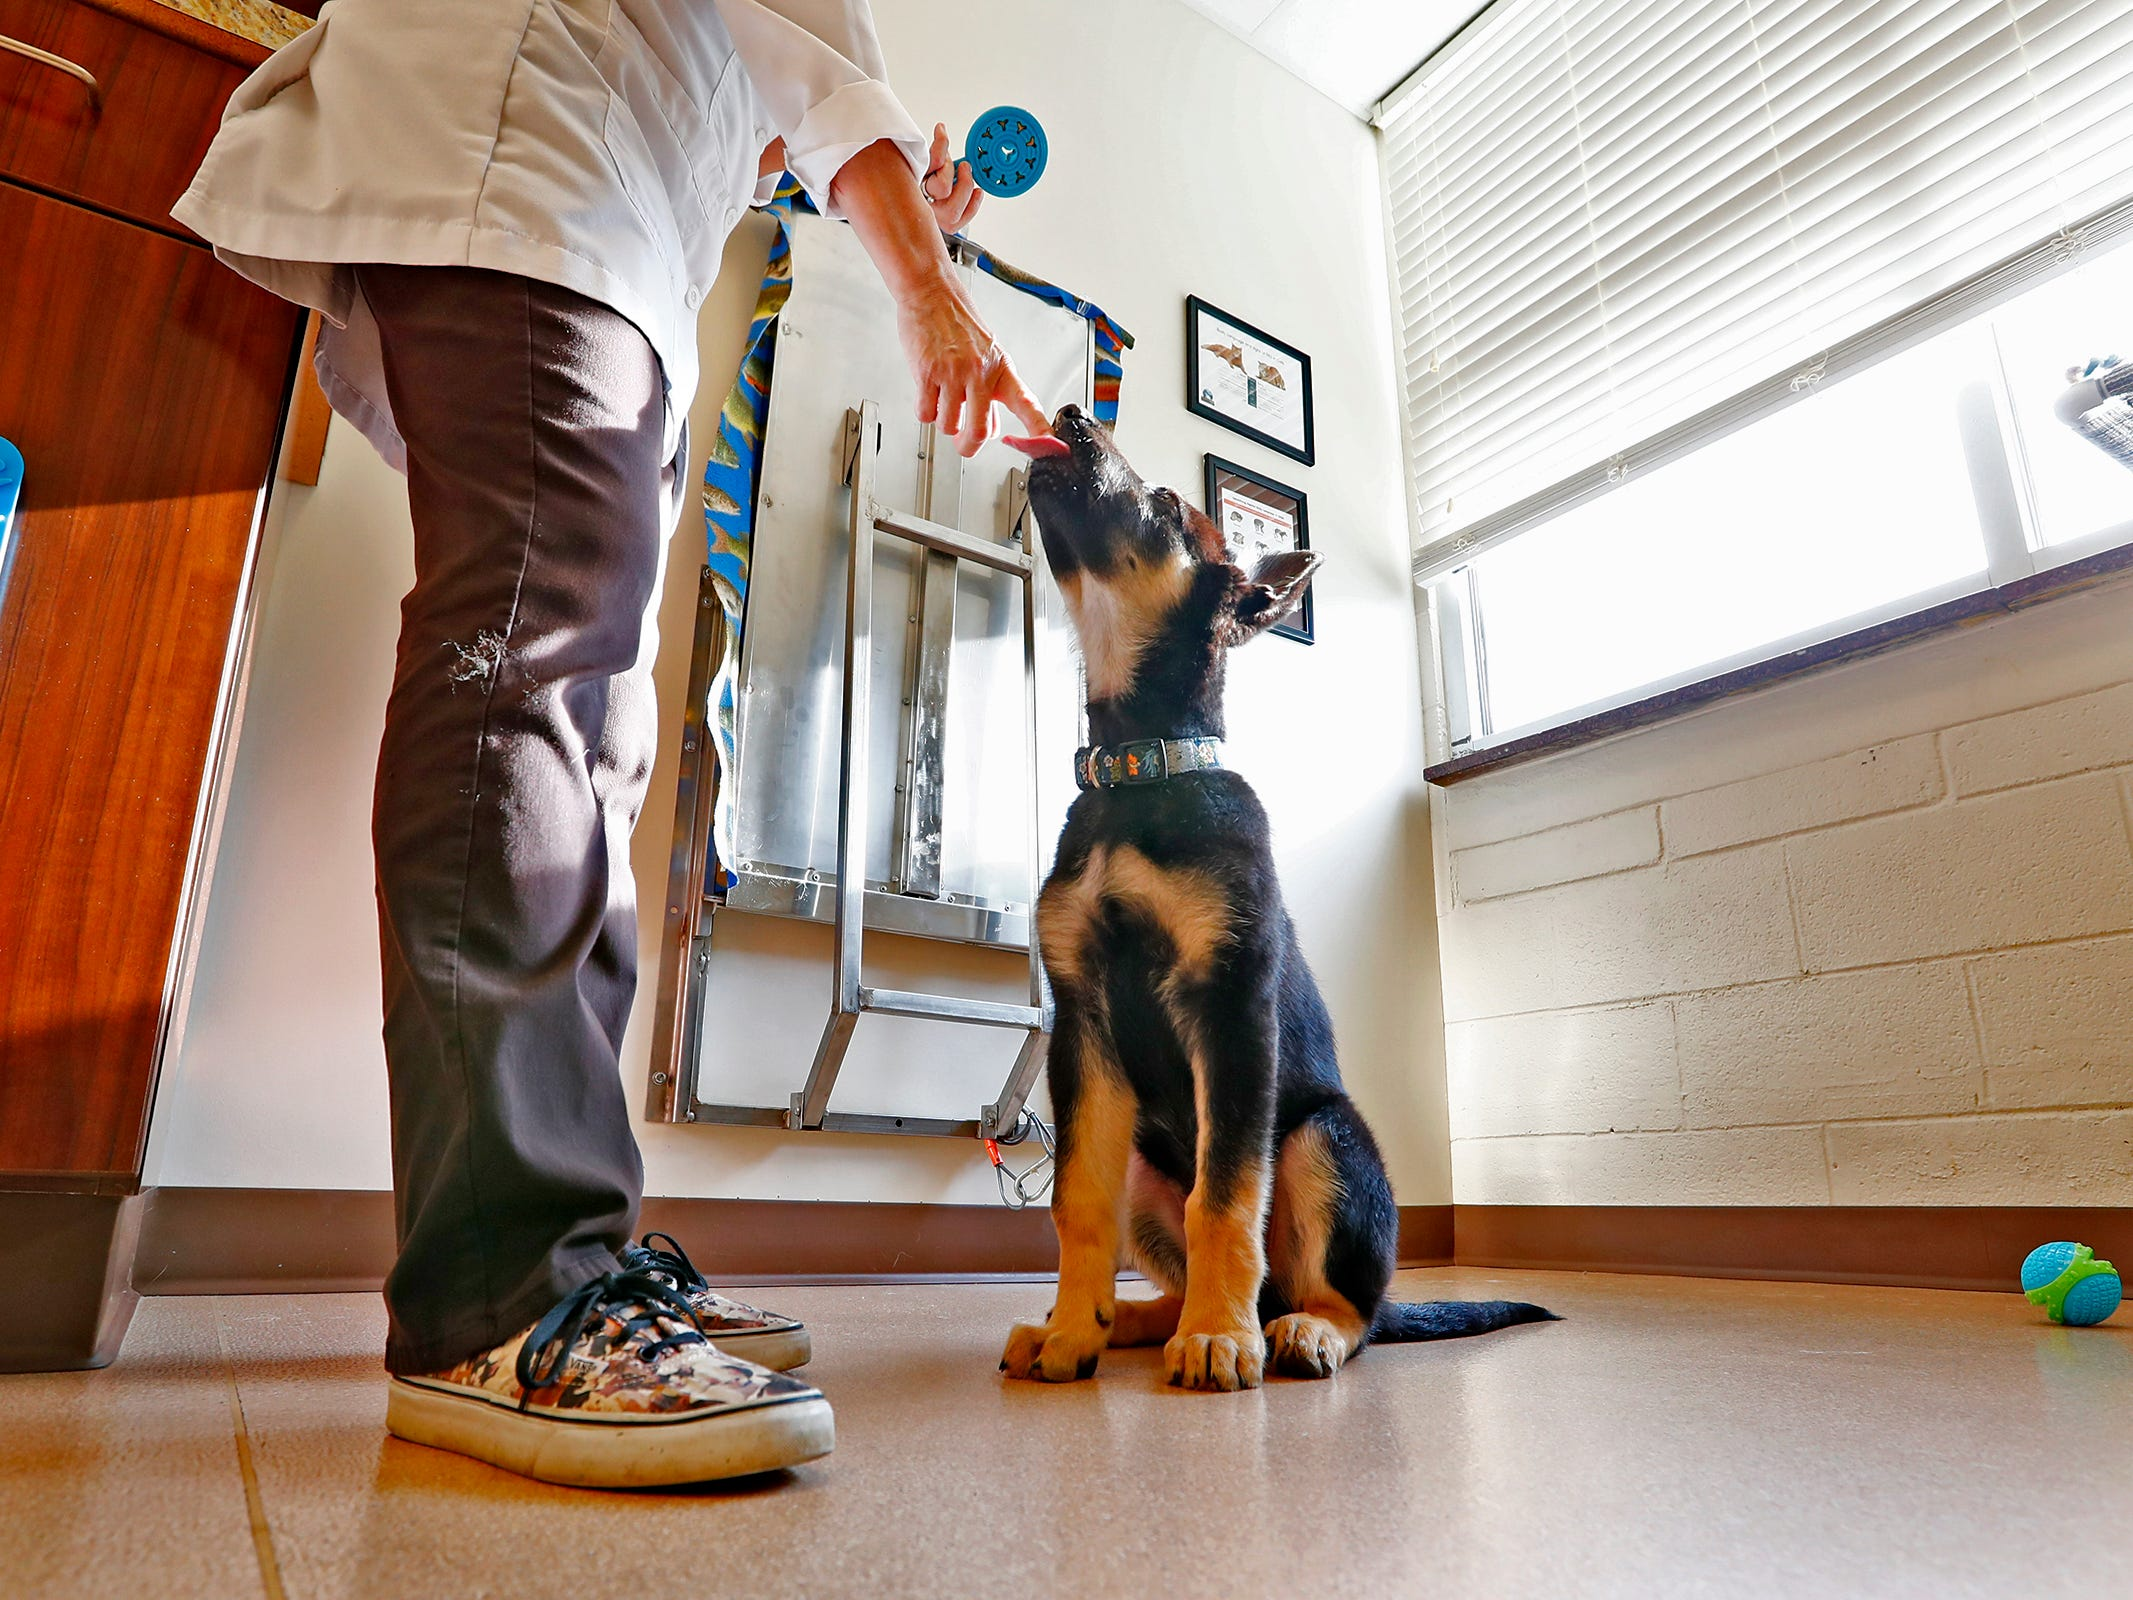 Spartacus sits still as Dr. Penny Dowden gives him a treat during his appointment at Paw Patch Place Animal Hospital, Friday, Aug. 31, 2018.  The veterinary clinic is the only one in Indiana to earn special fear free certification from an international program that aims to help vets reduce anxiety for pets prone to feel stressed in their offices.